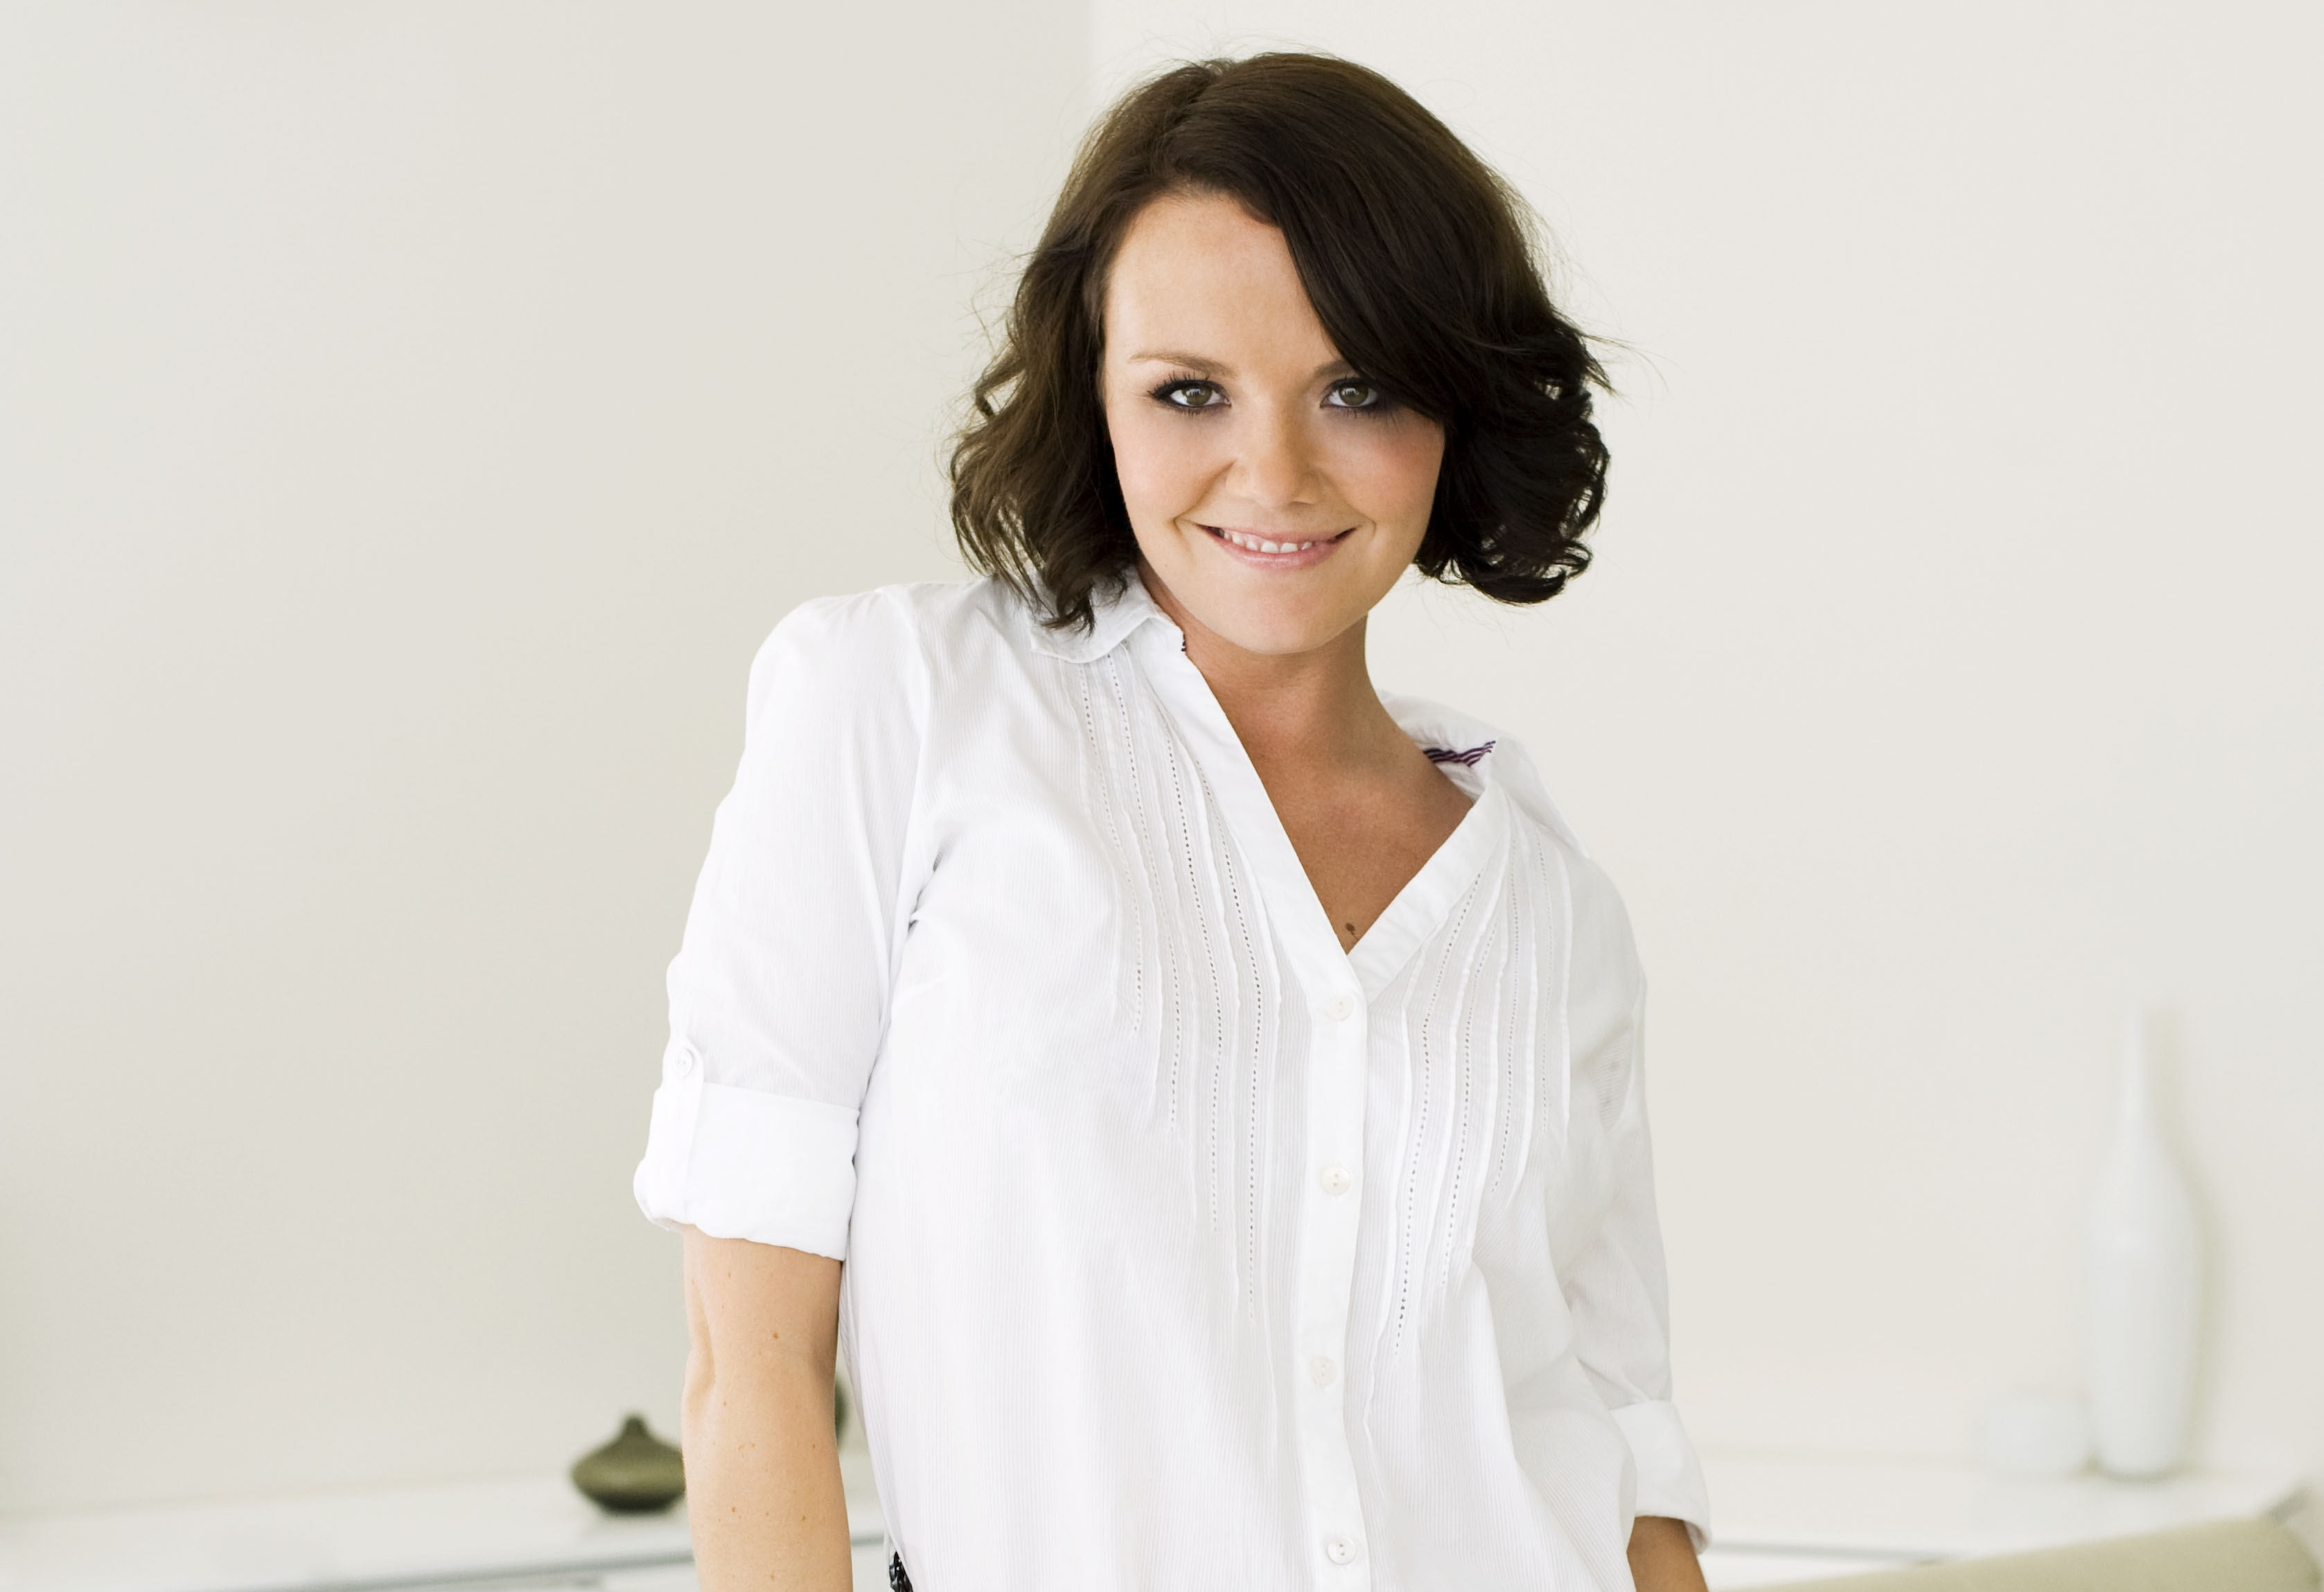 Charlie Brooks Hd Background